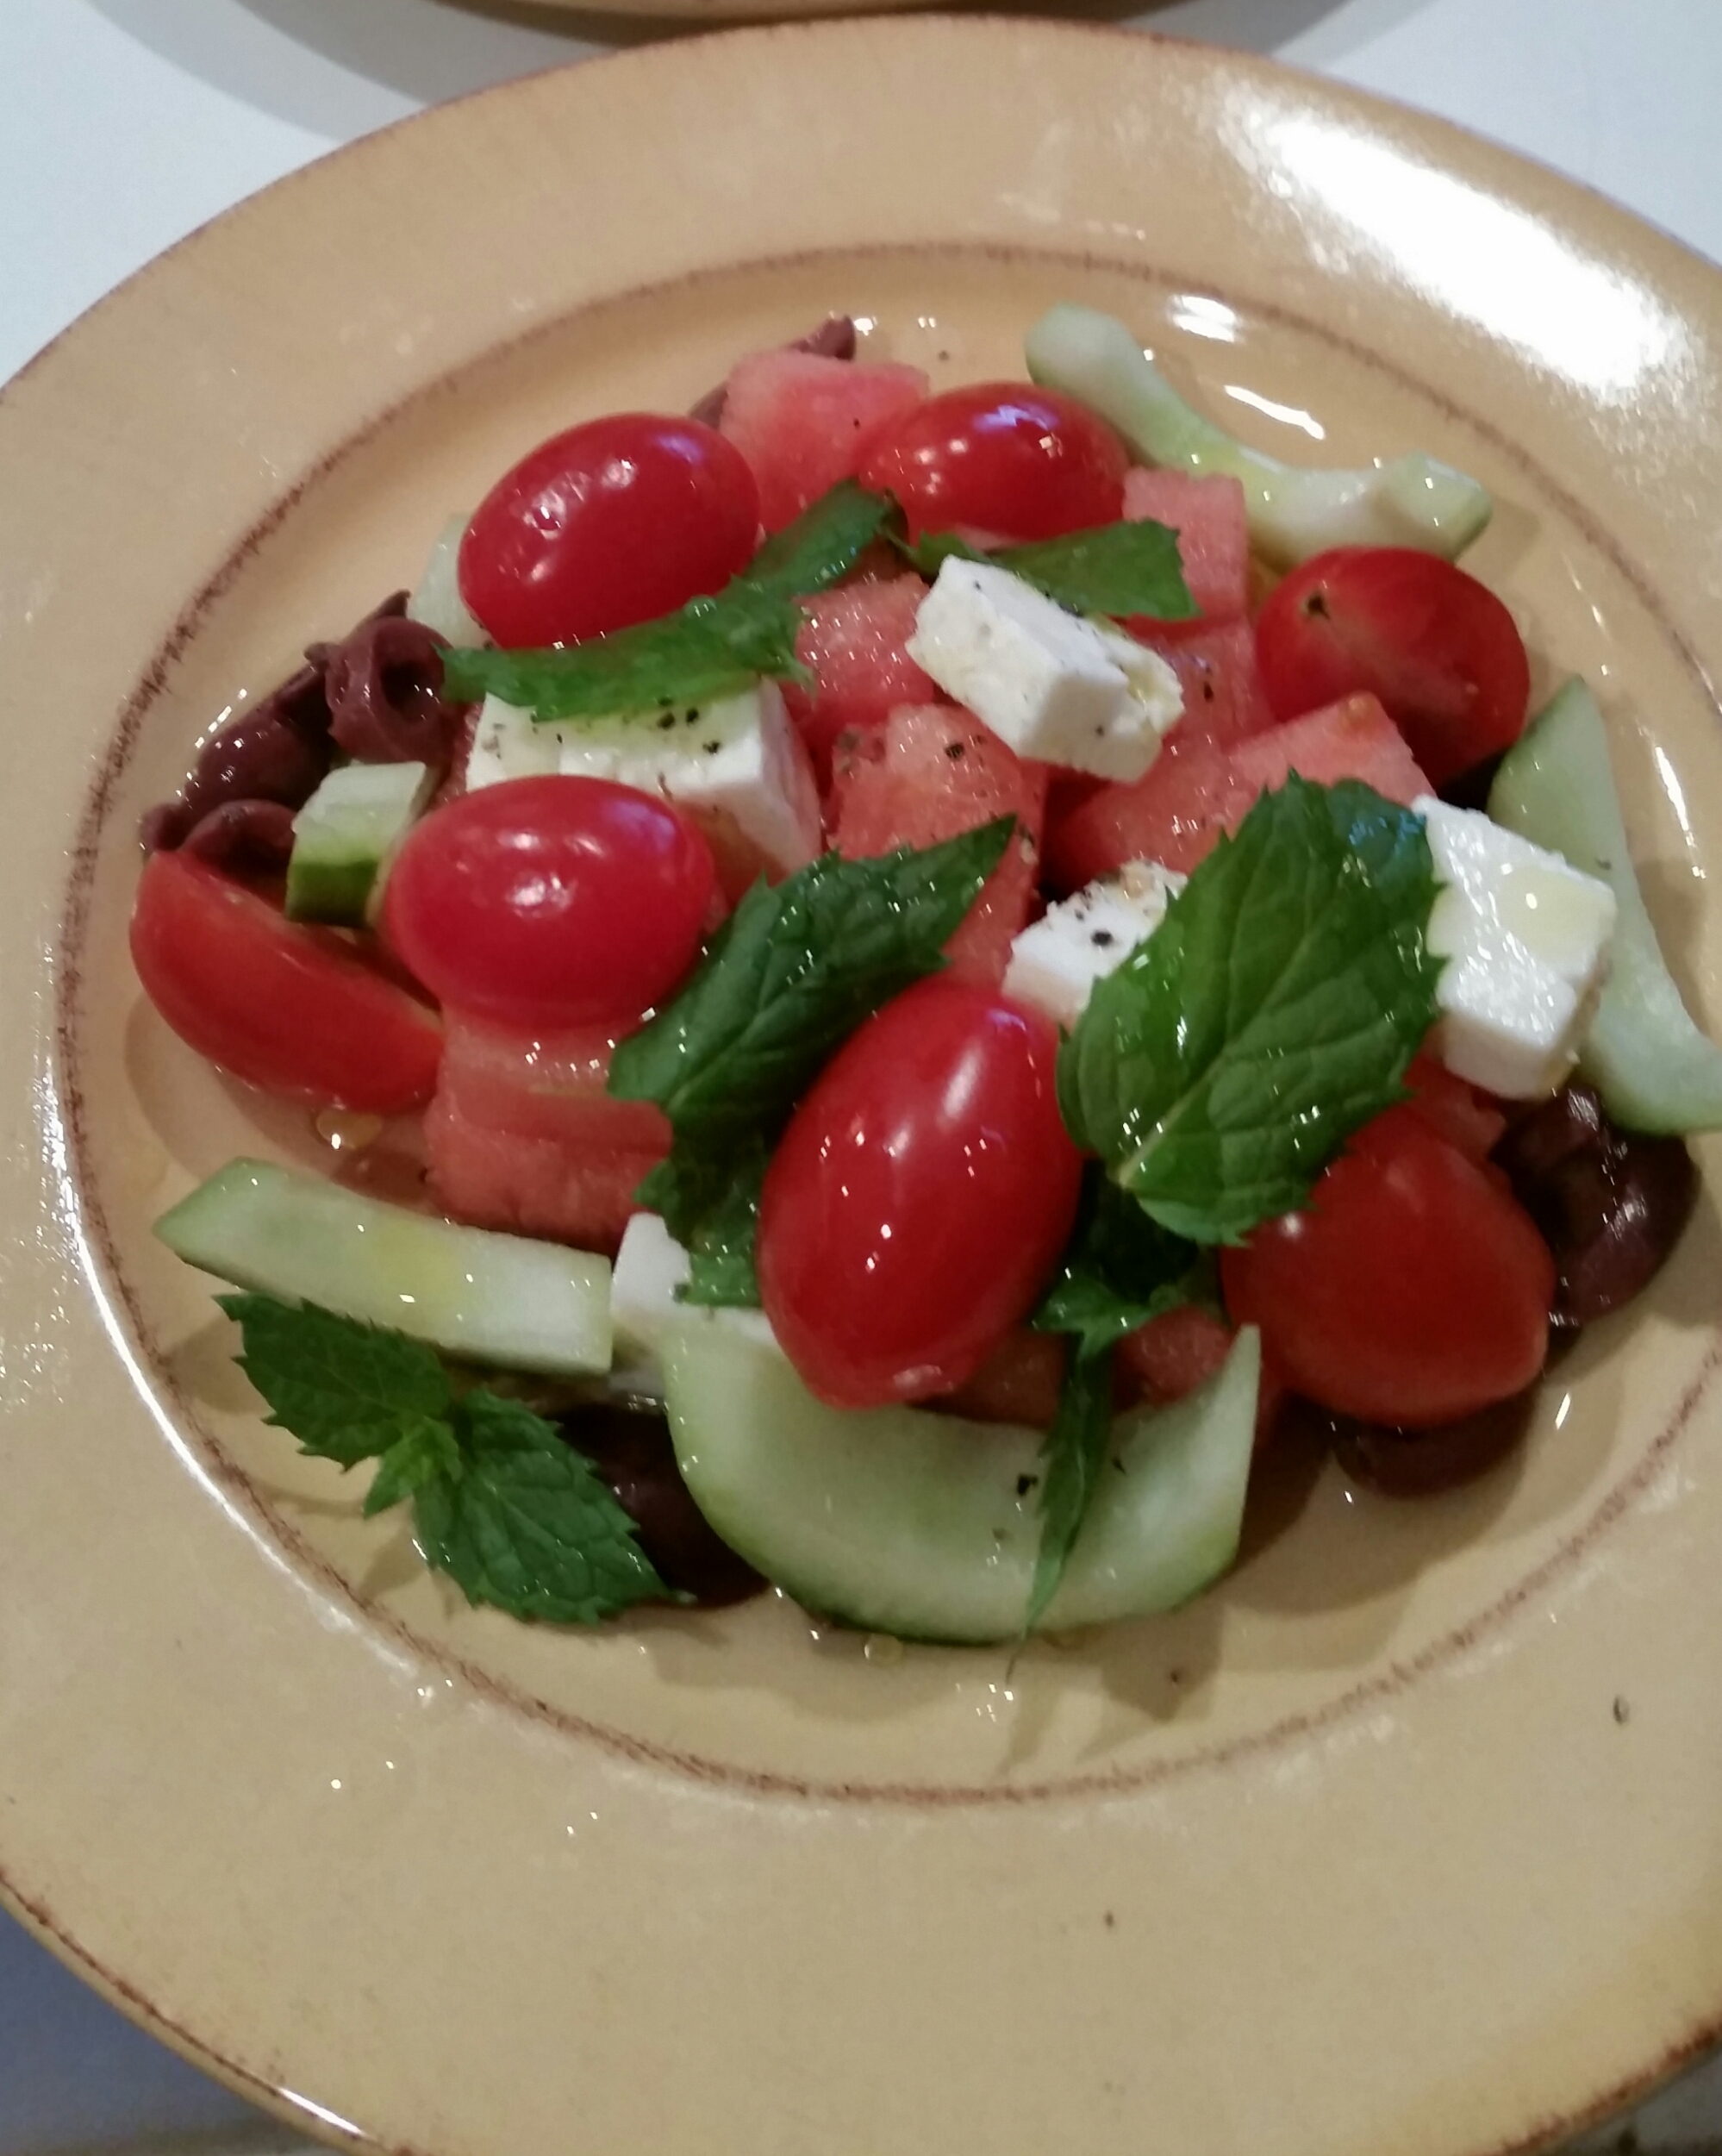 This is a simple Watermelon Feta Salad with Tomatoes, Cucumber and Kalamata Olives.  Fresh mint gives great flavor to any dish.  I finished it off with some fresh cracked pepper, olive oil, lemon juice and a champagne vinegar.  The sweetness of the fruit and the salt in the cheese makes for a delicious and healthy combination.